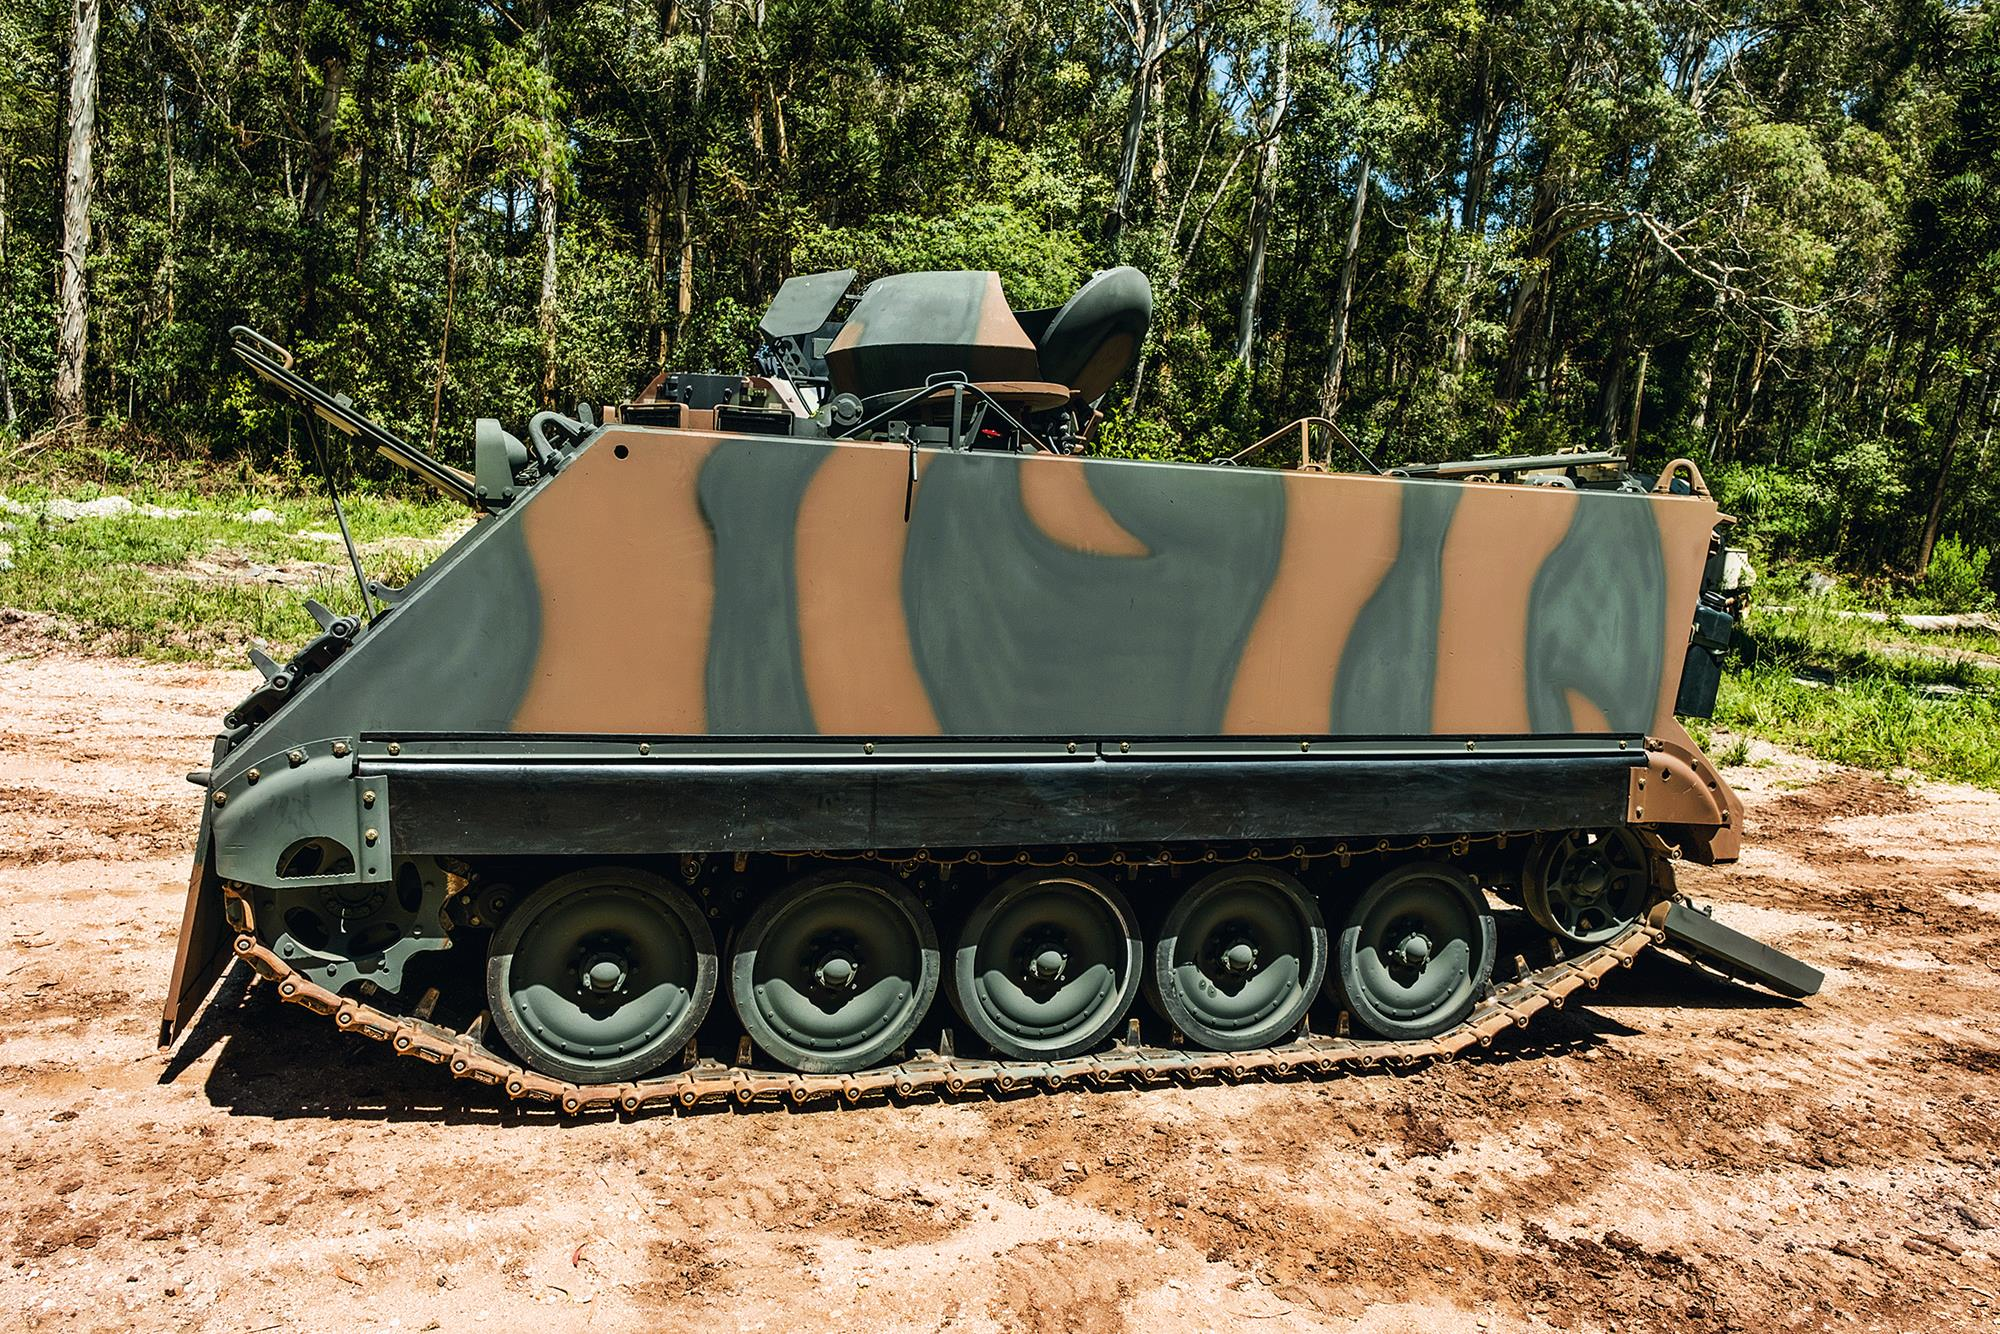 m113-br